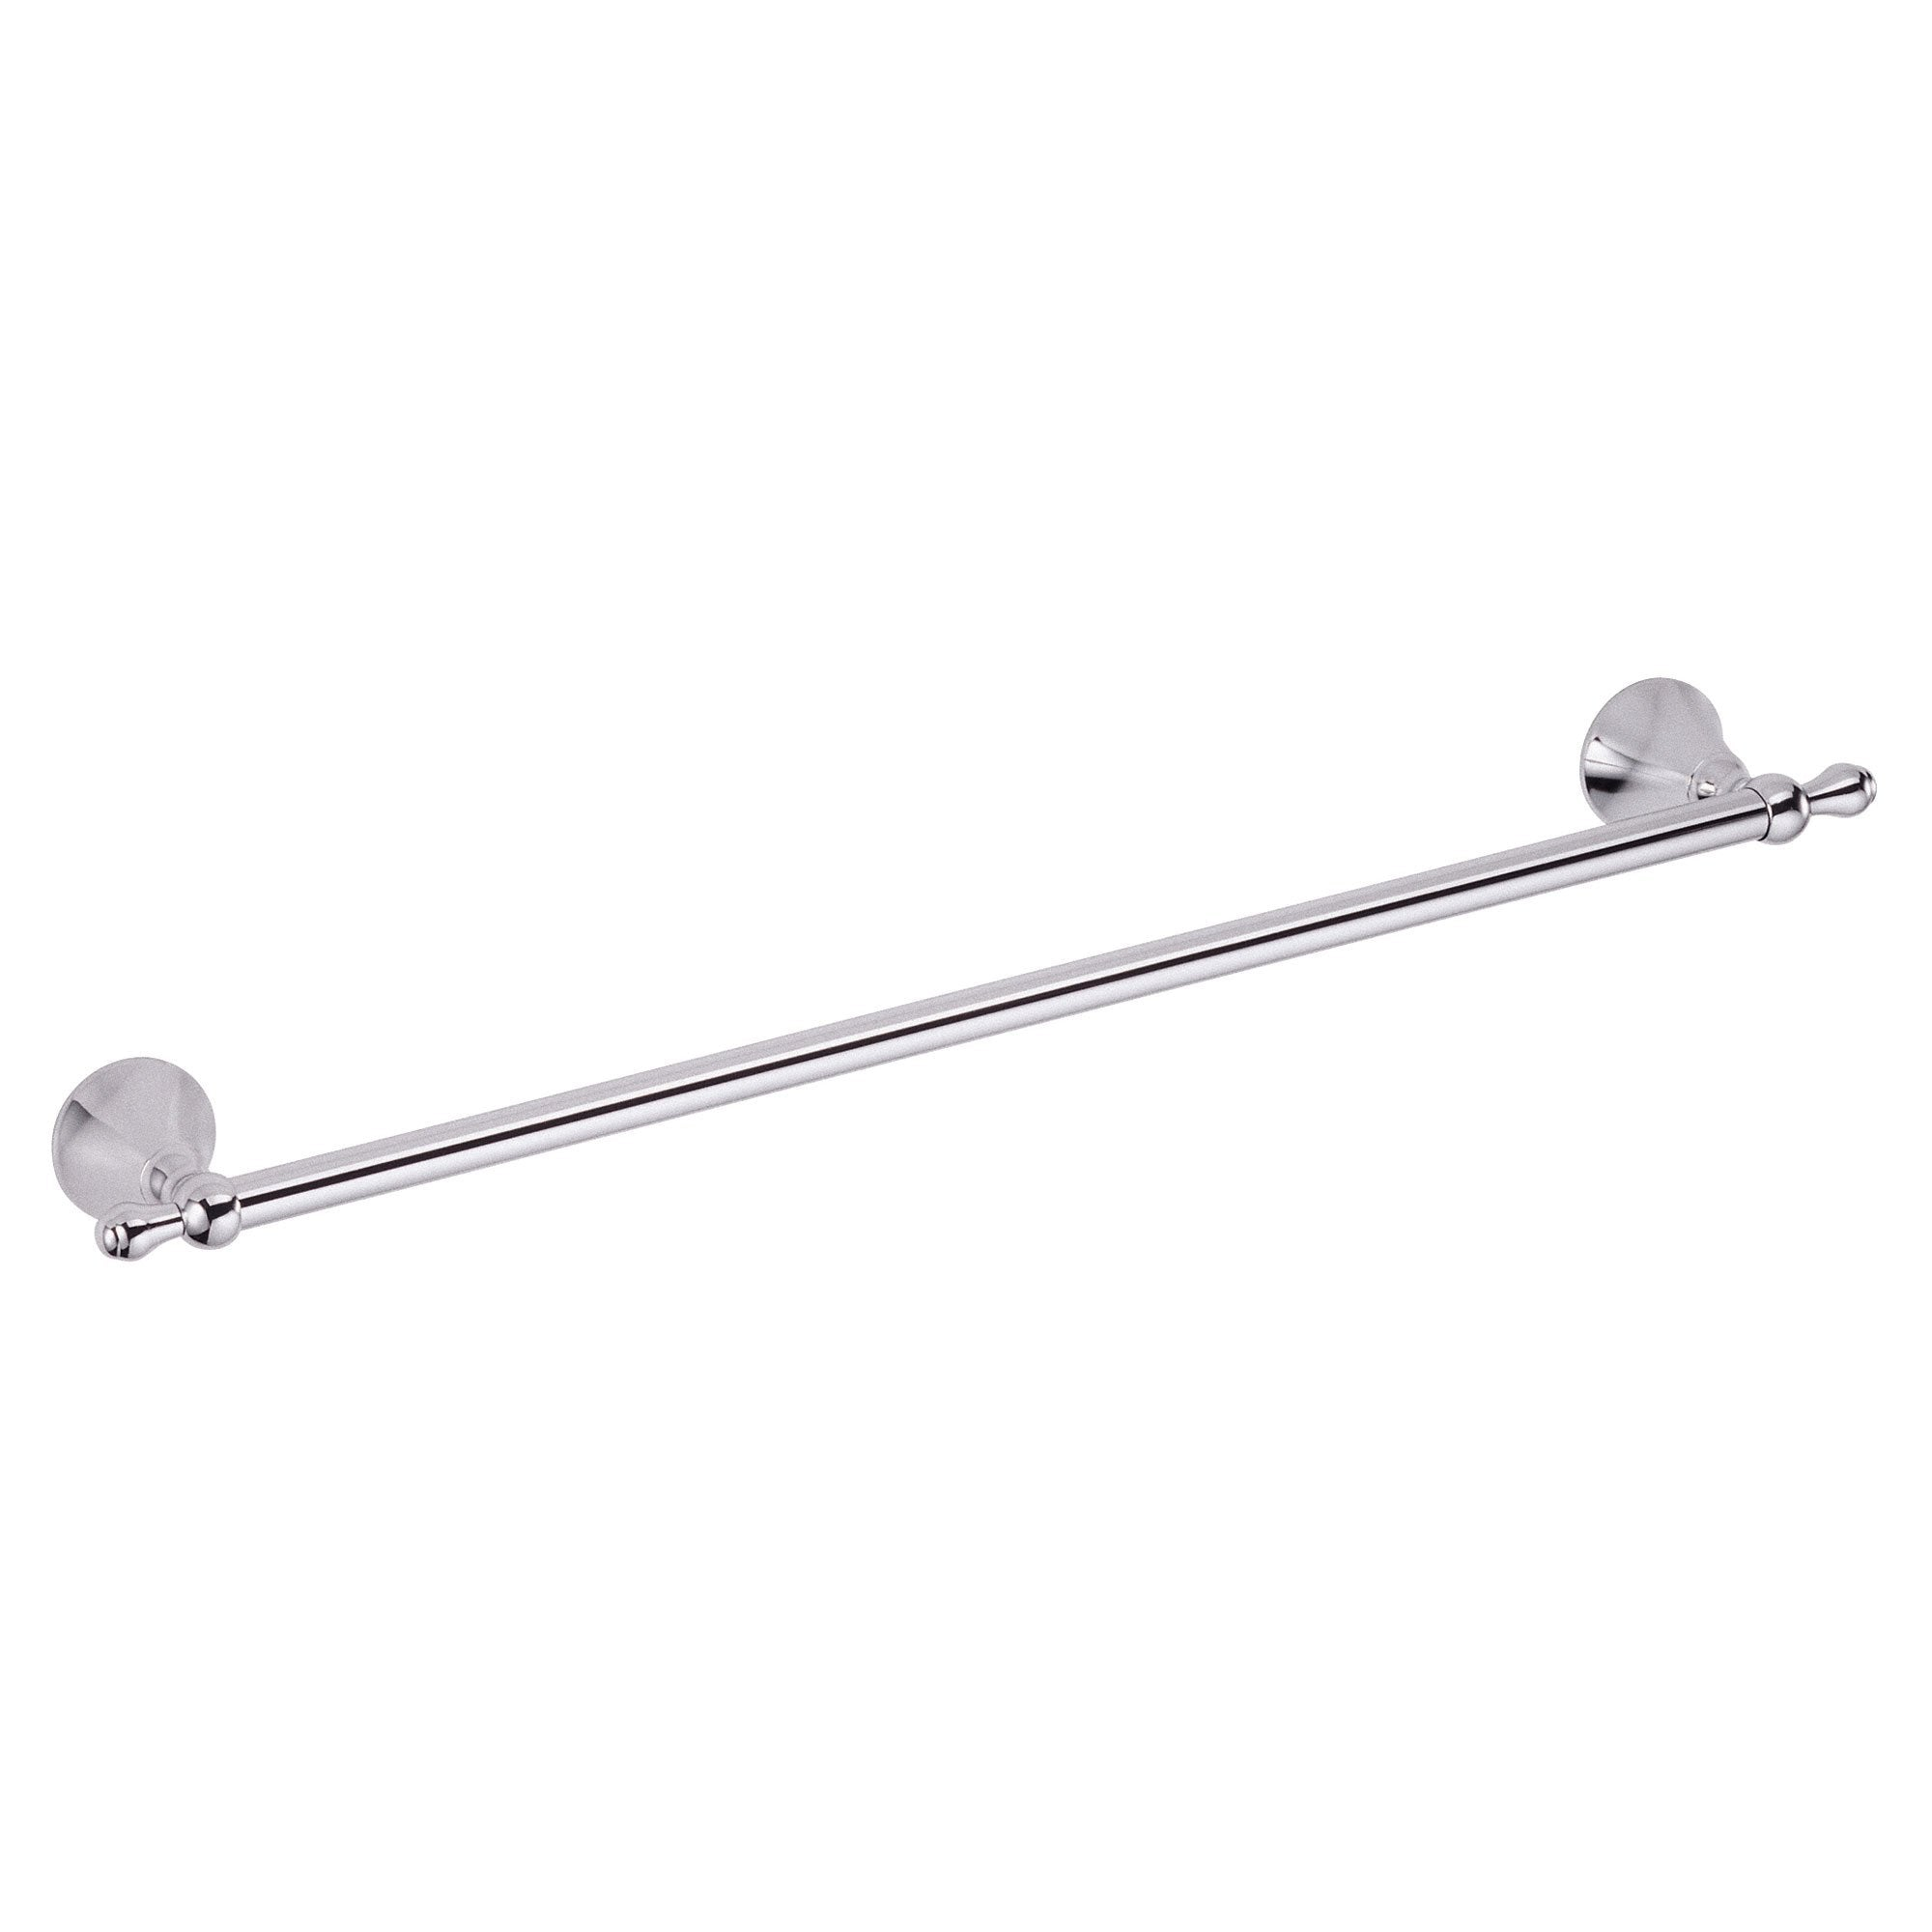 "Danze Bannockburn Towel Bars Chrome 24"" Towel Bar"